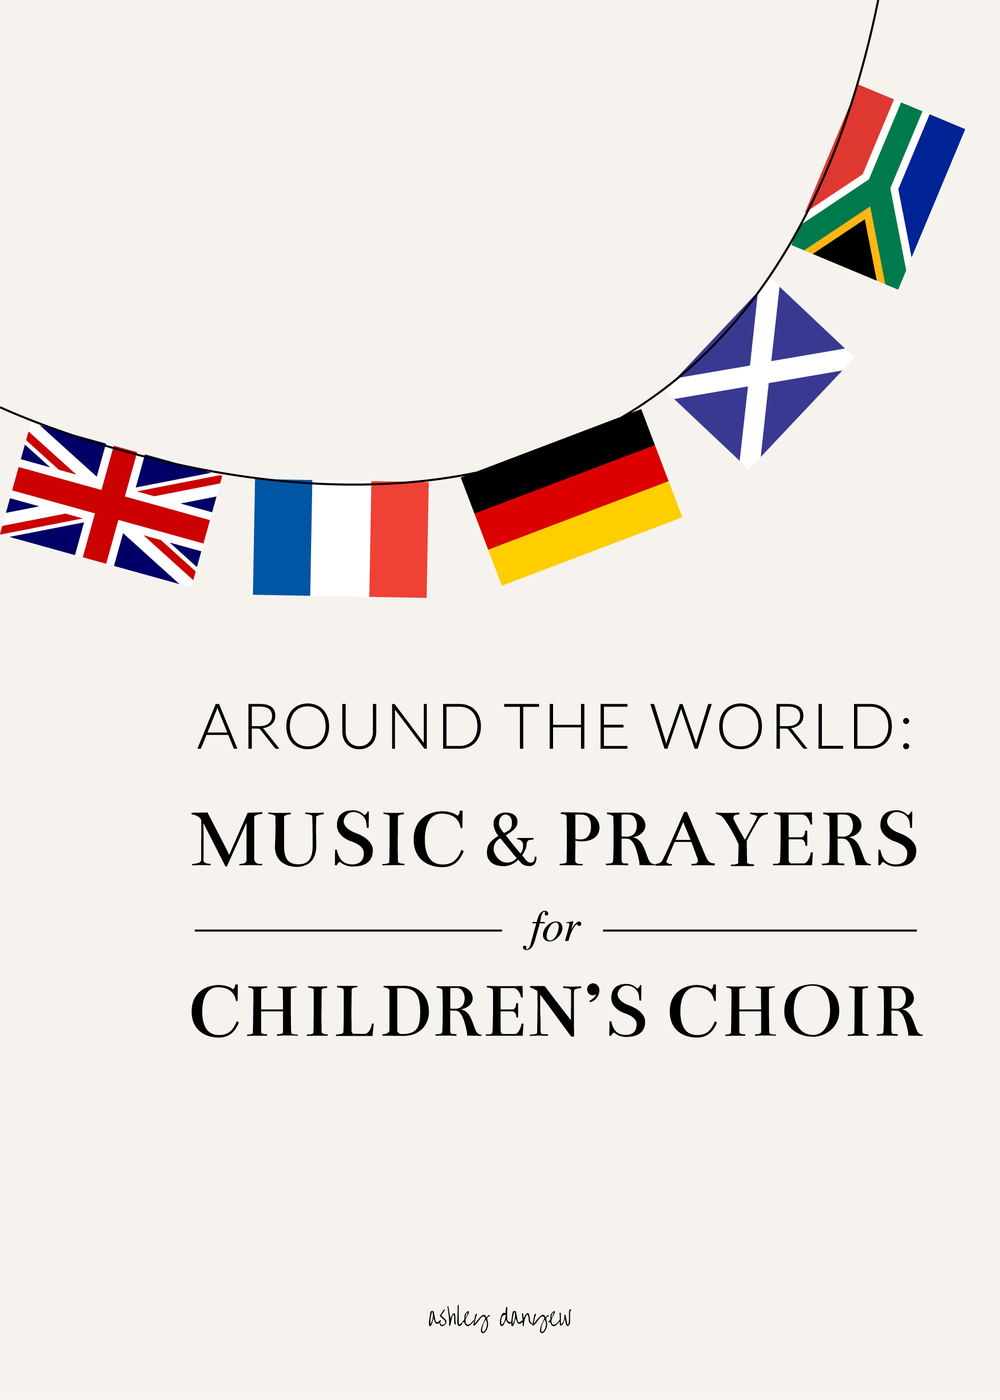 Around the World - Music and Prayers for Children's Choir-01.png